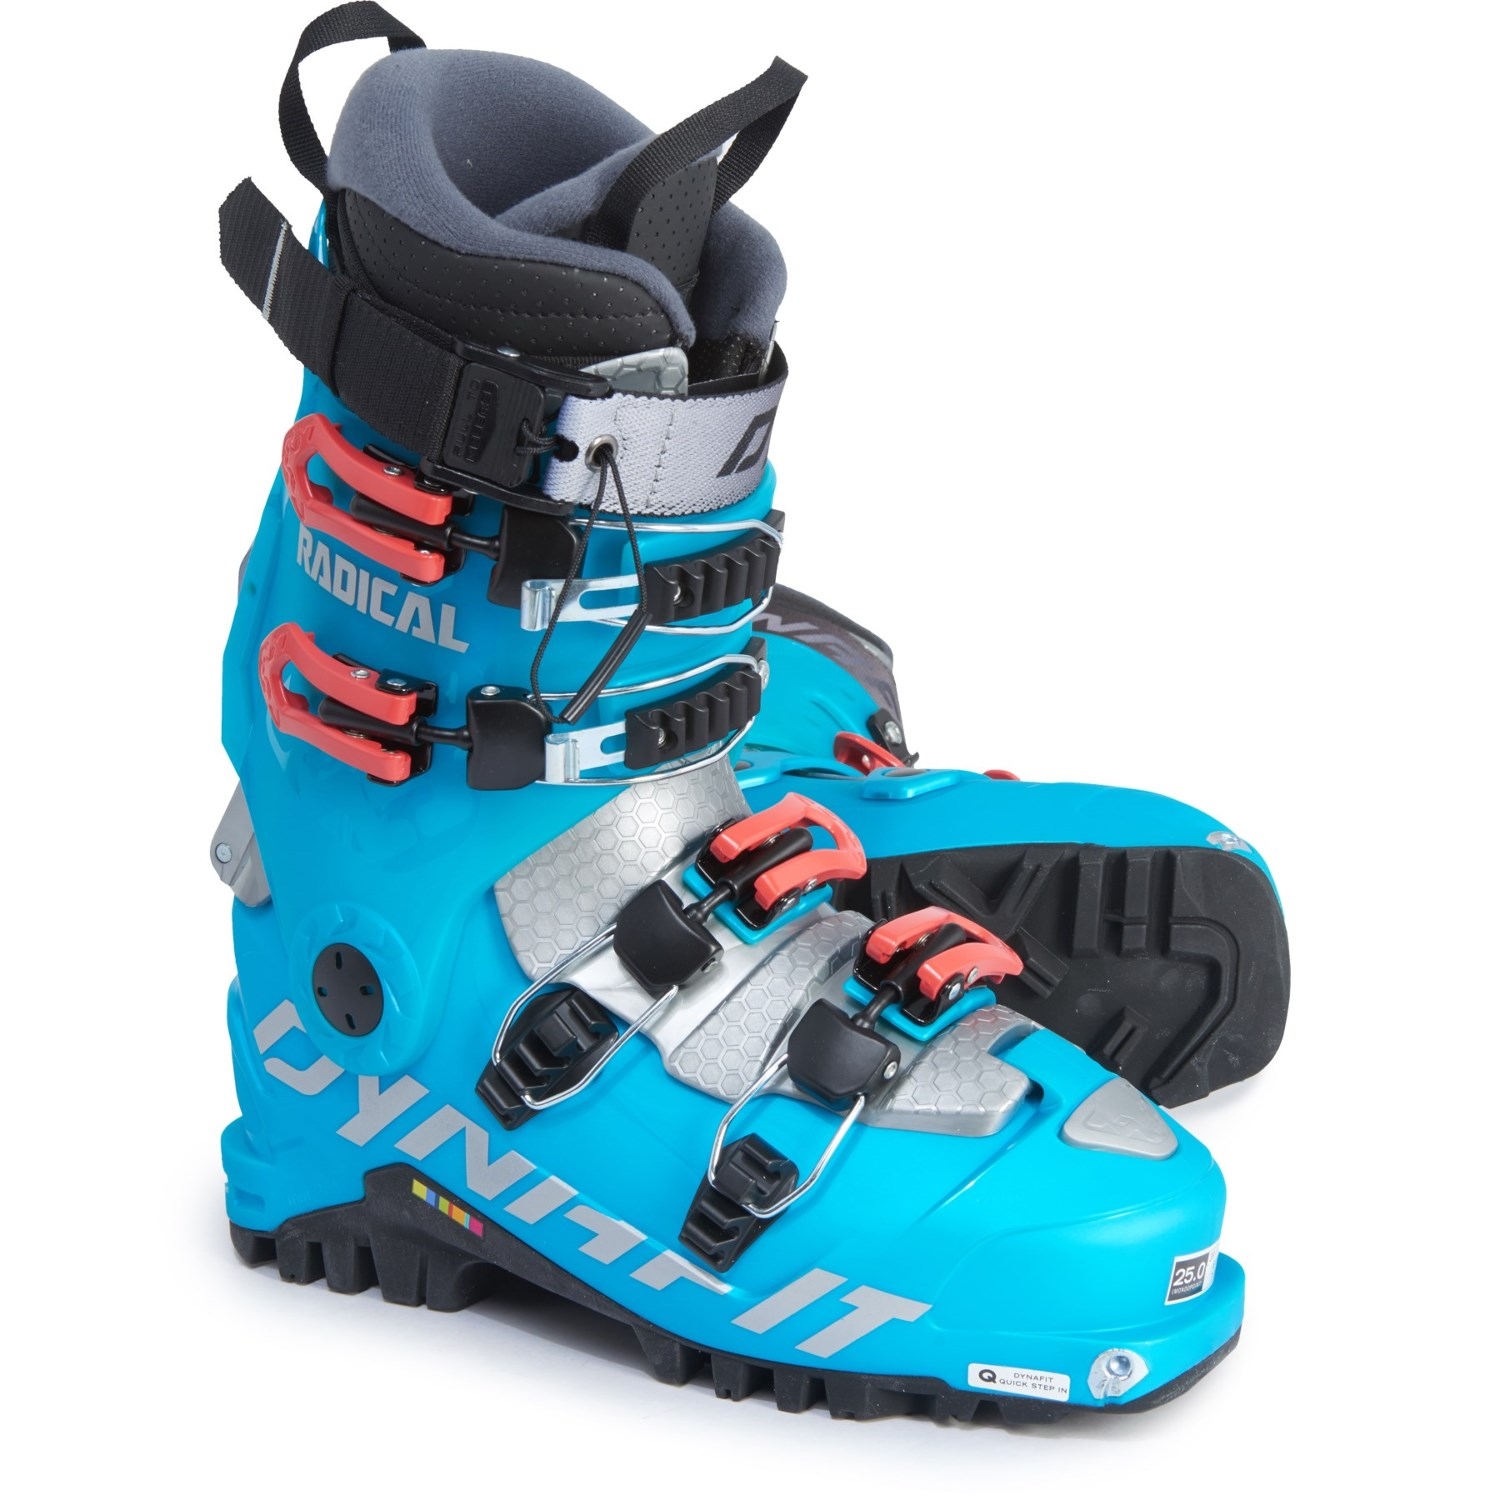 ce6ffcc29ec Dynafit Made in Italy Radical Alpine Ski Boots (For Women) - Save 22%